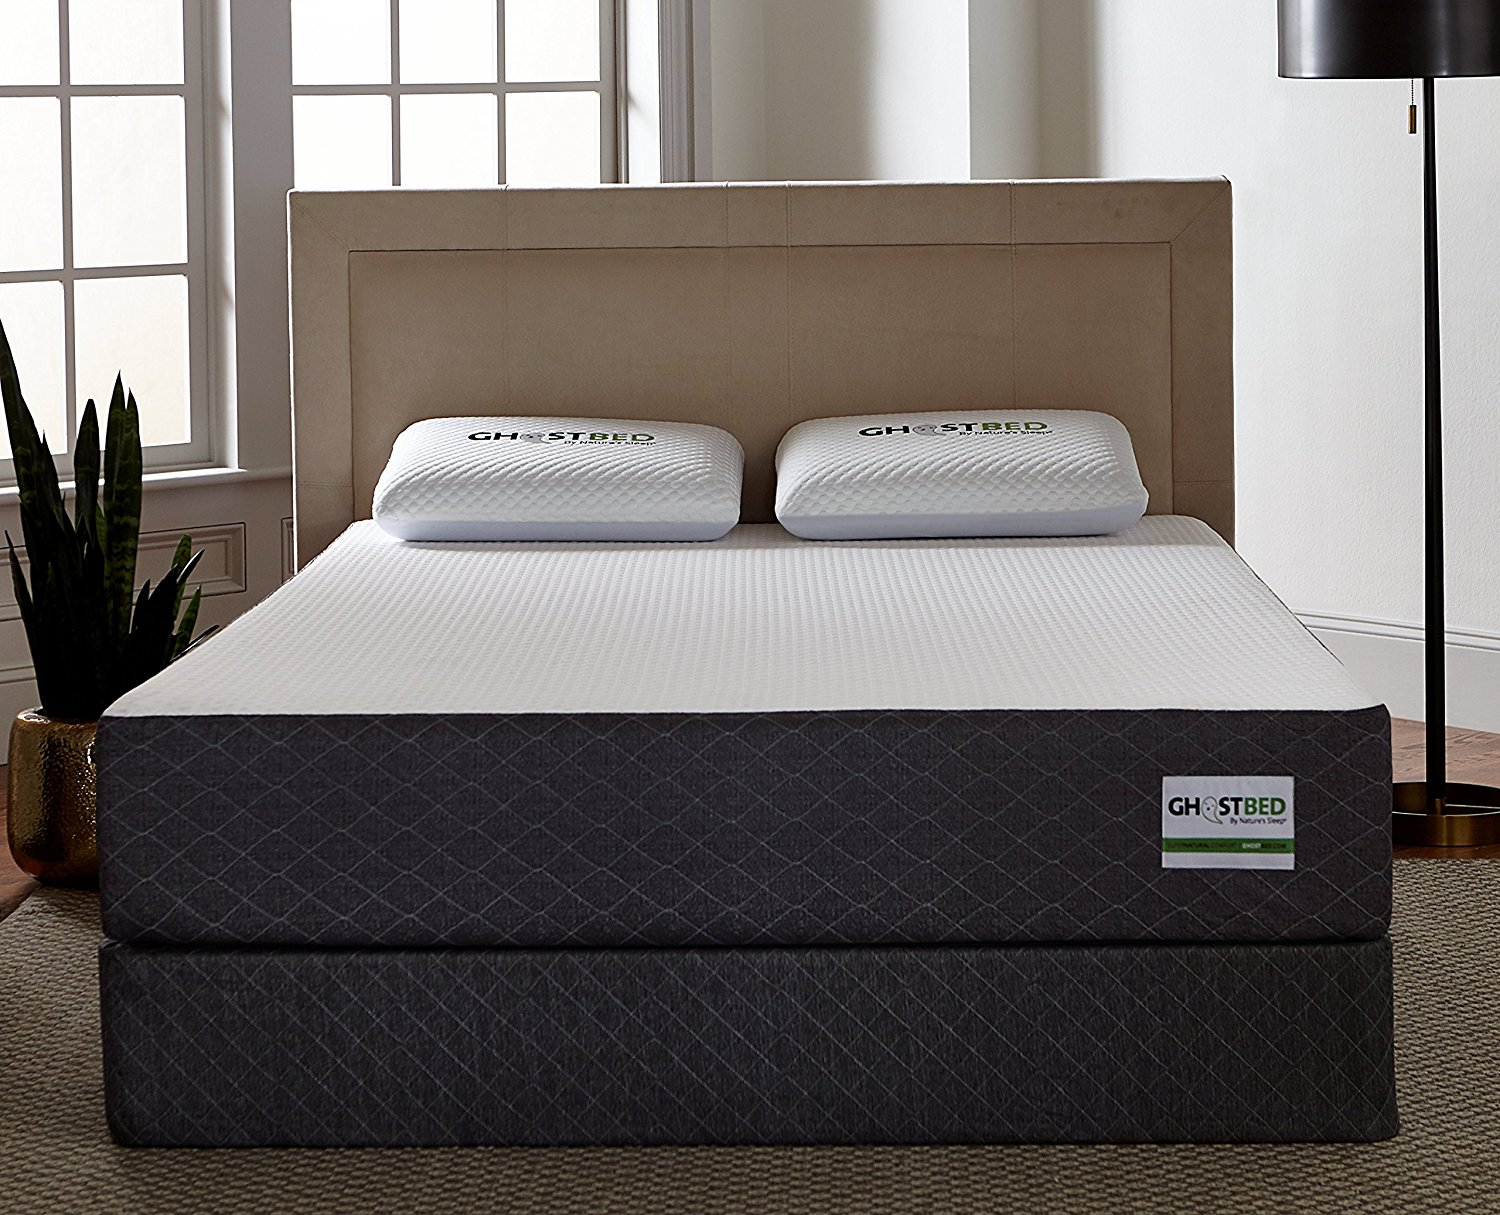 GhostBed Cooling Mattress Review by www.snoremagazine.com